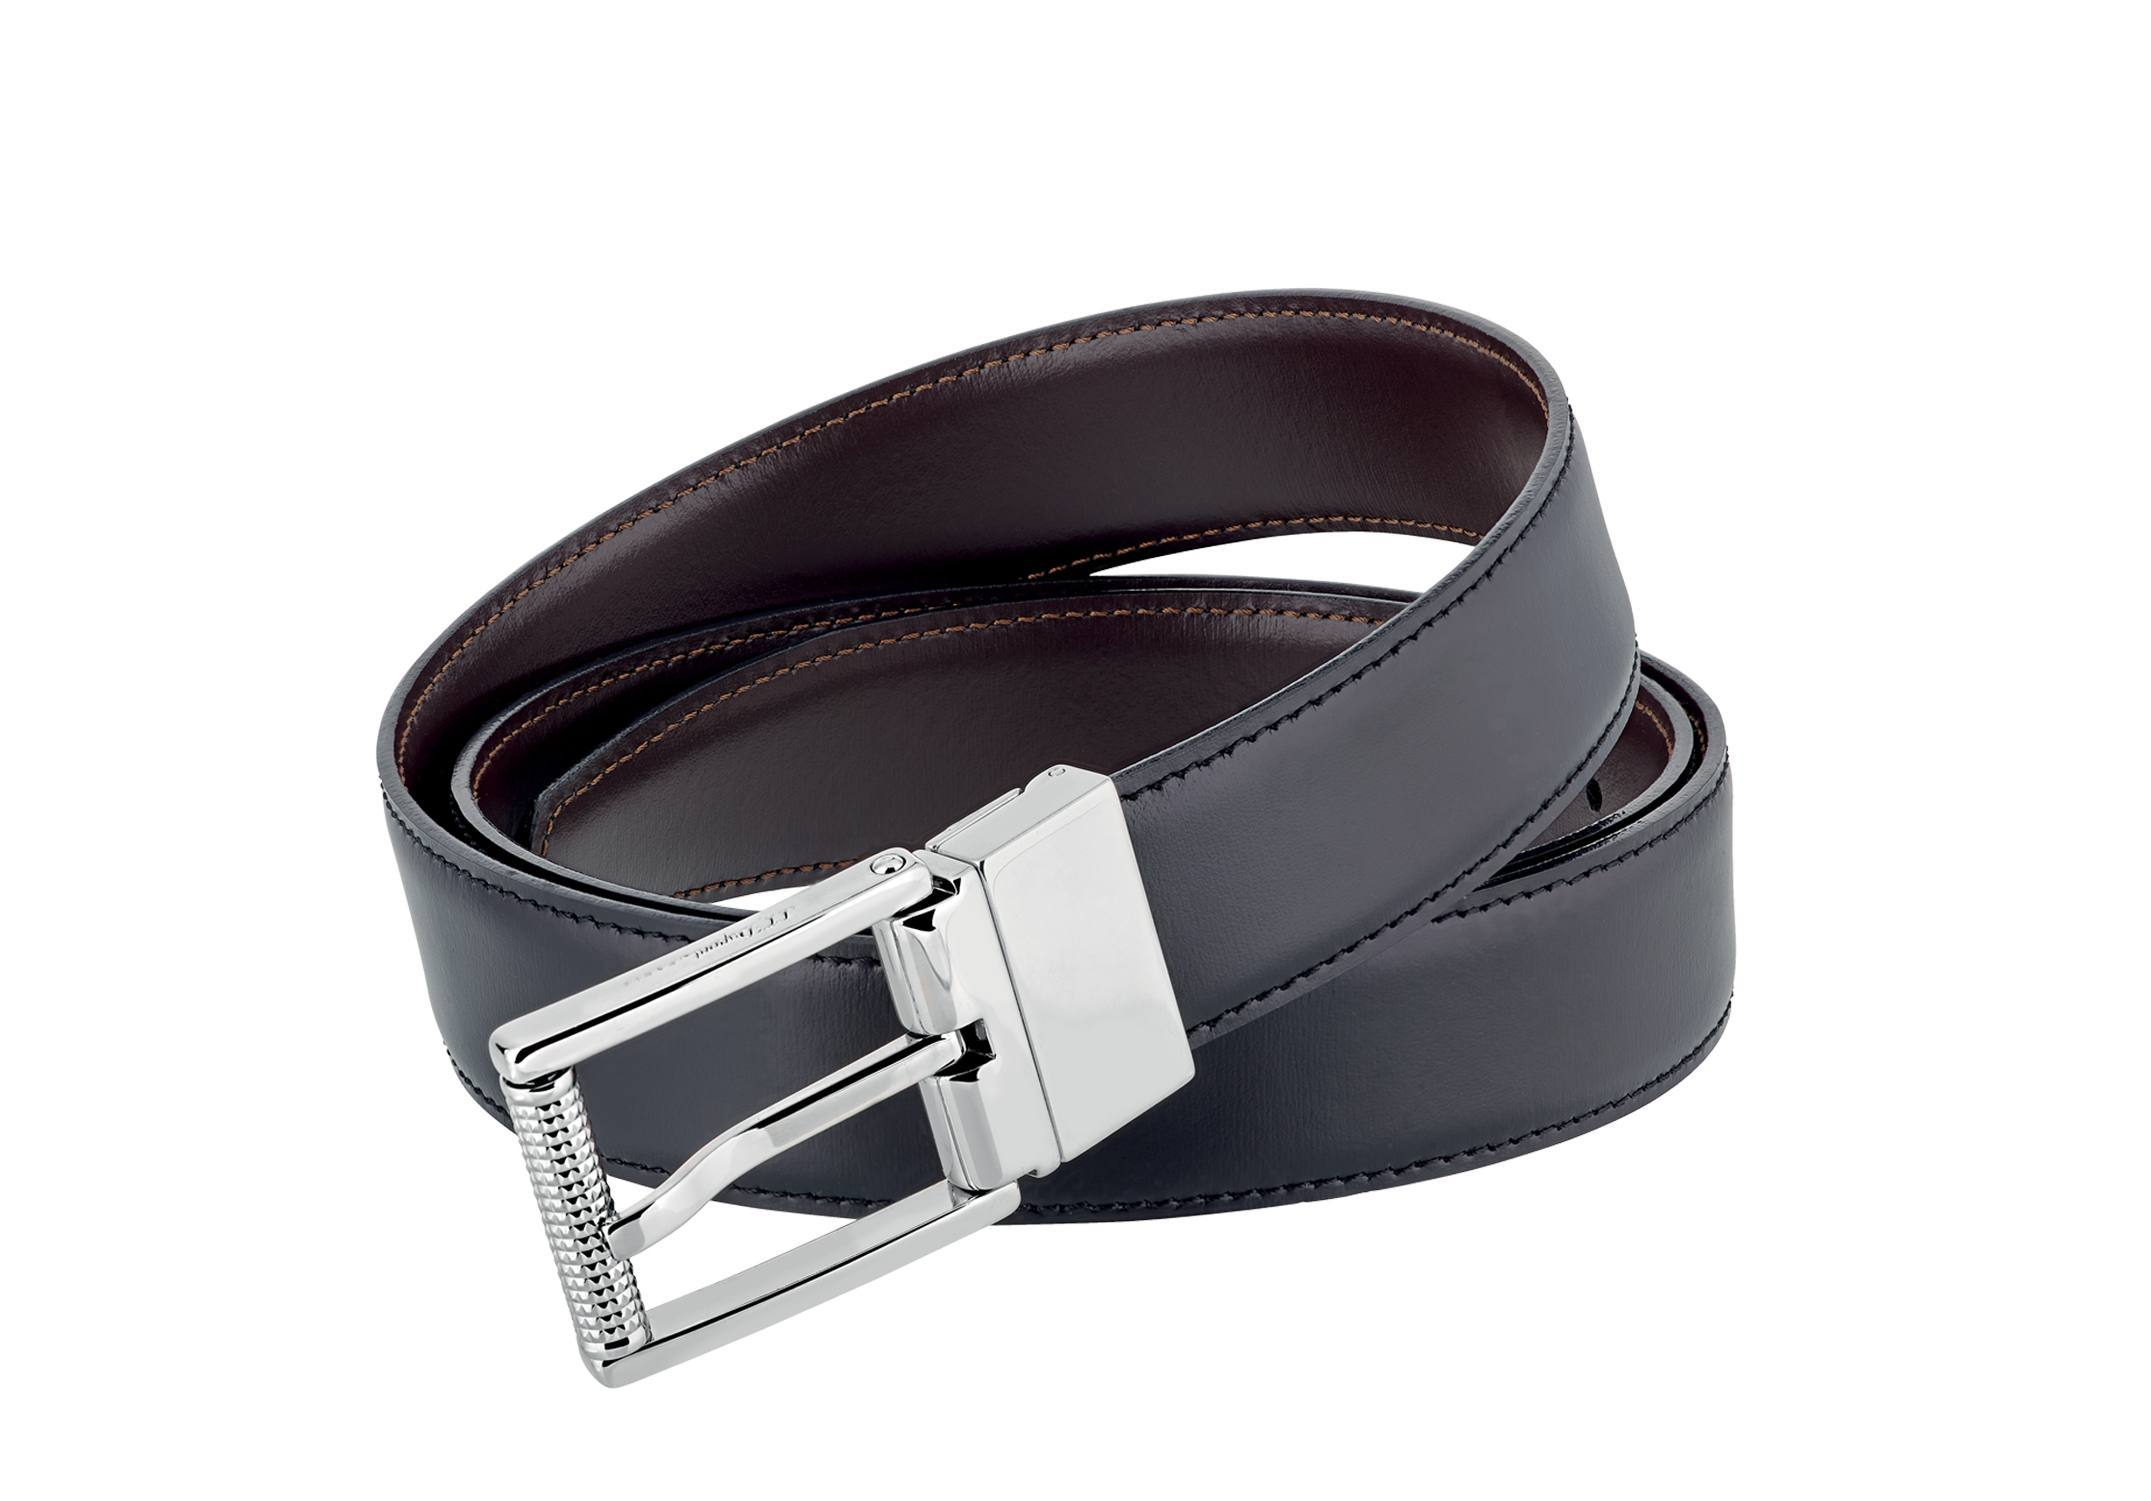 S.T. DUPONT PALLADIUM FINISH BELT